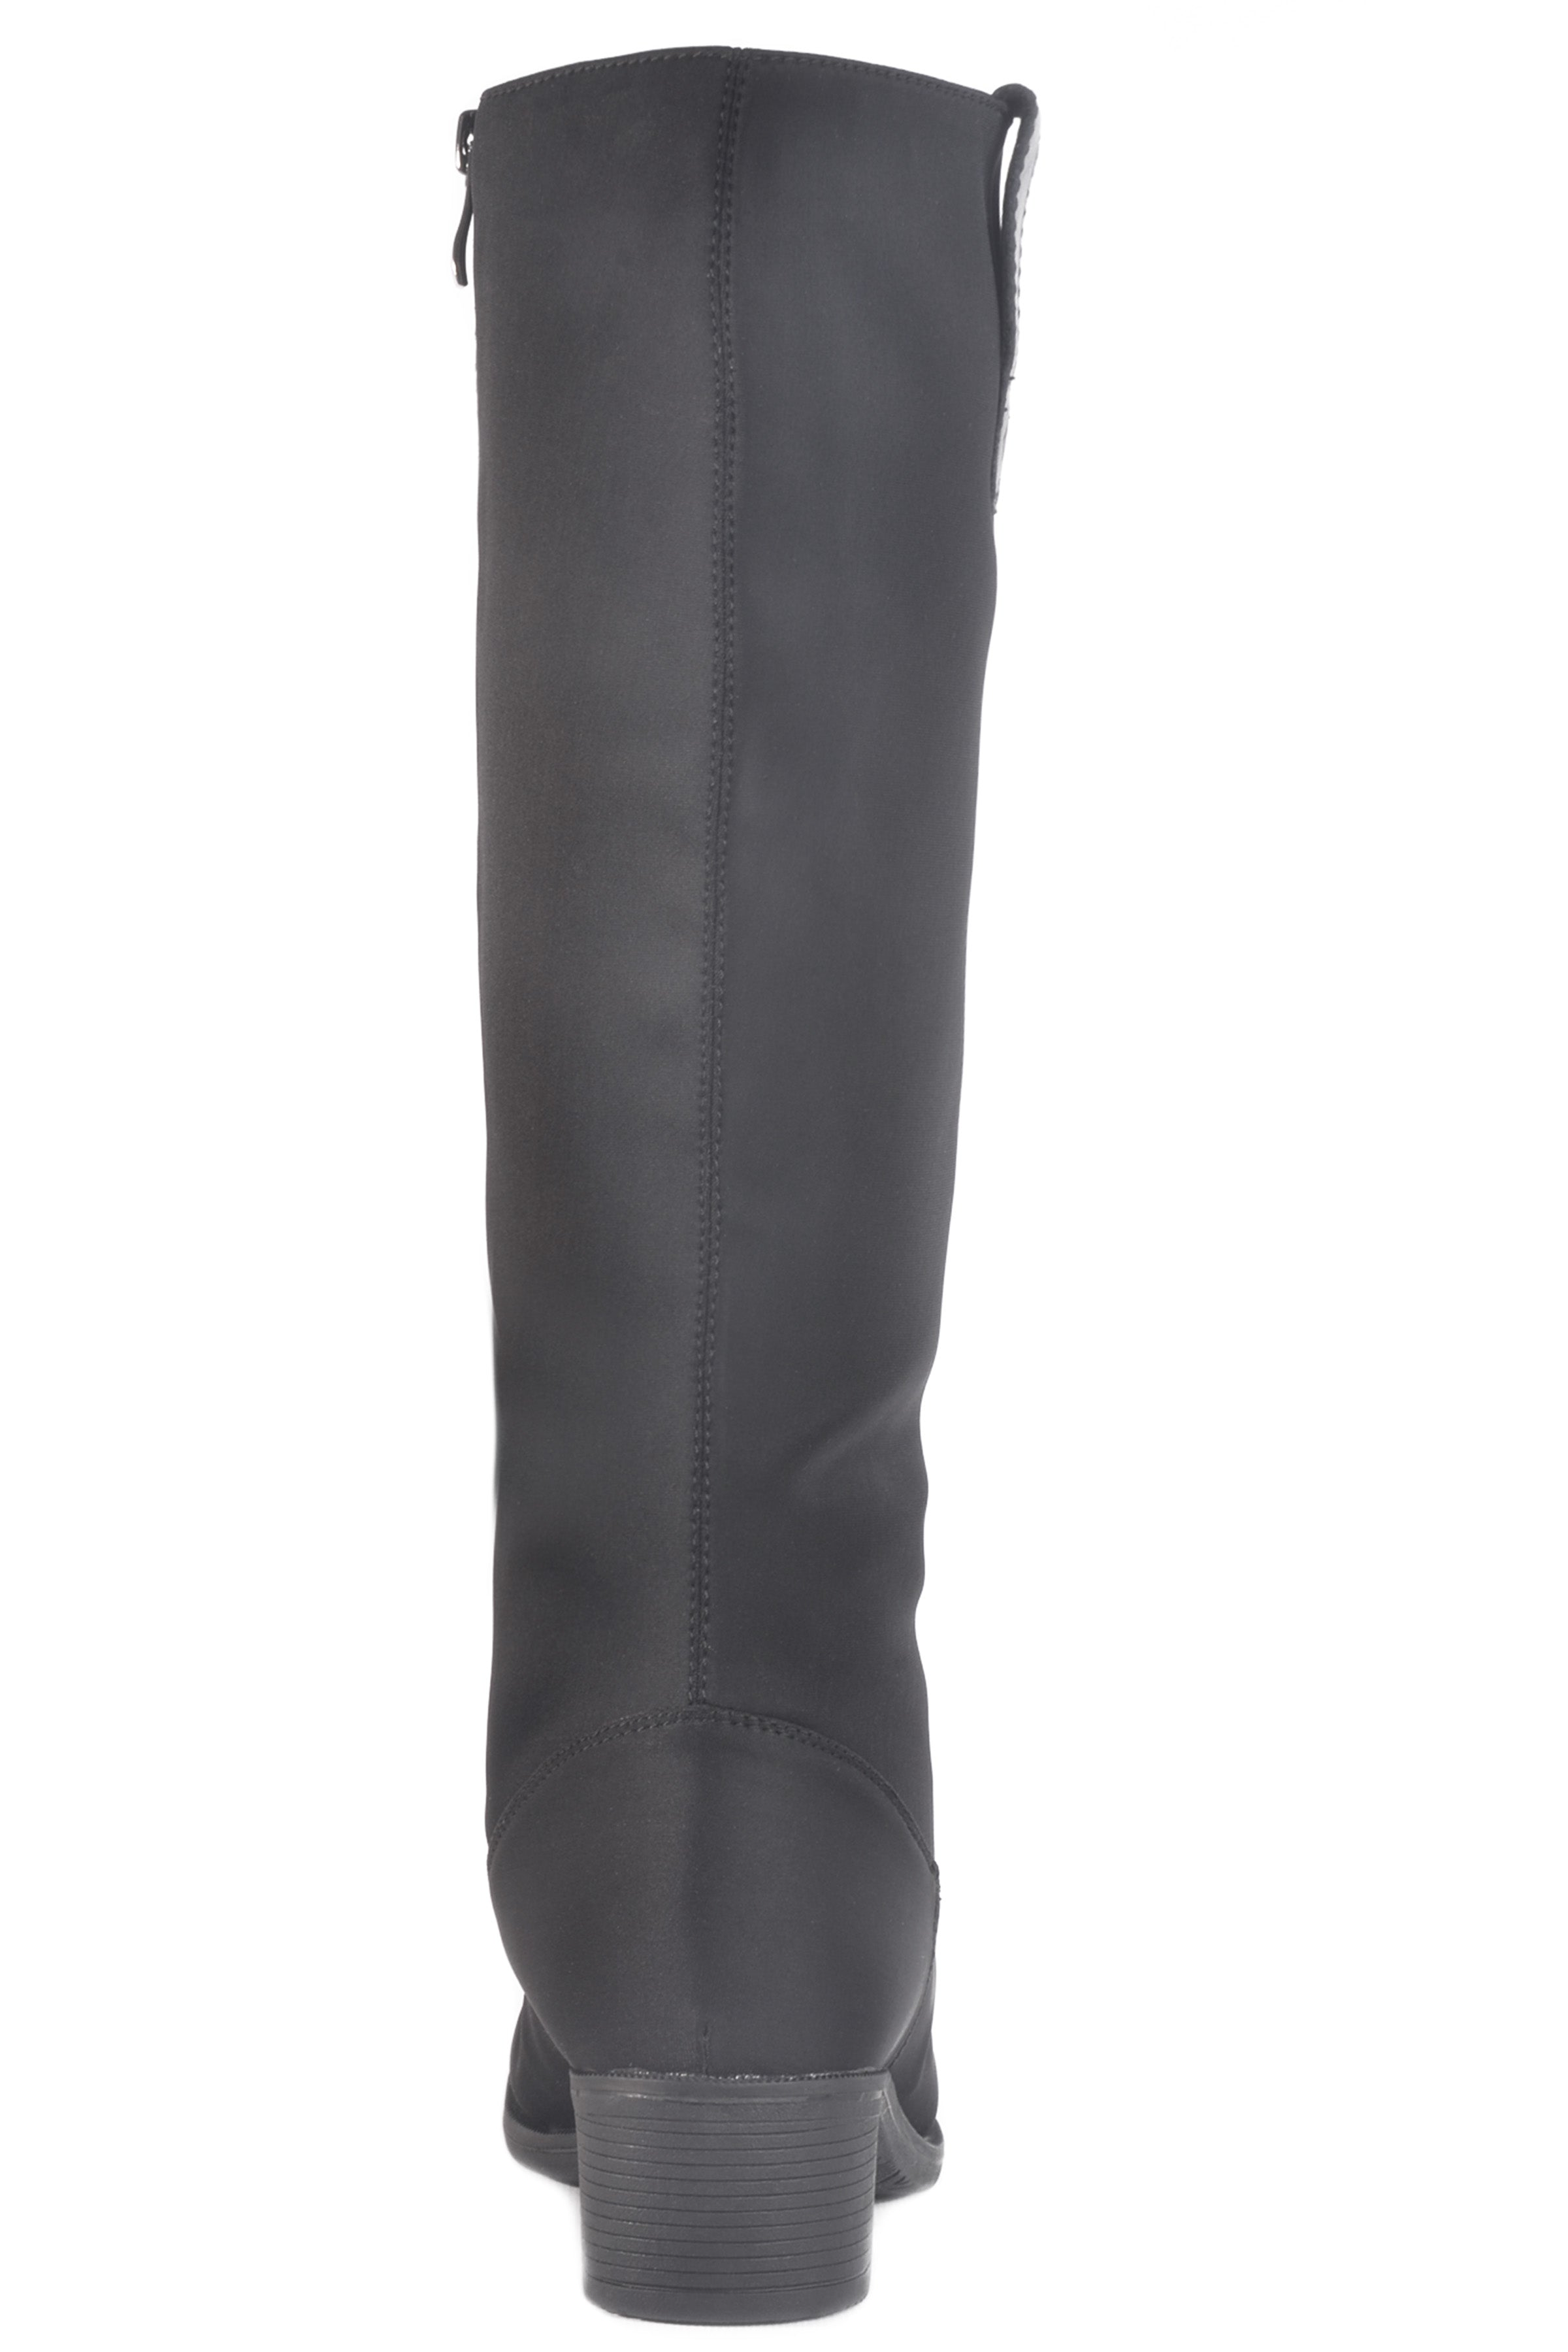 MANHATTAN BREATHABLE WATERPROOF NYLON TALL BOOT